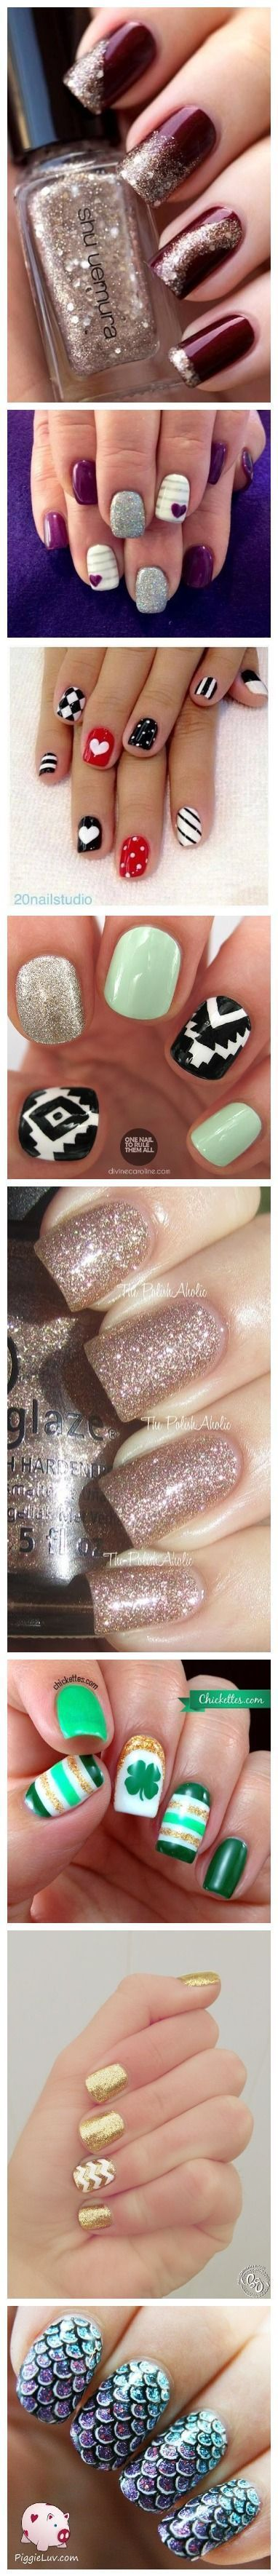 Nail Art Designs - Get Creative Nail Design, Nail Art, Nail Salon, Irvine, Newport Beach